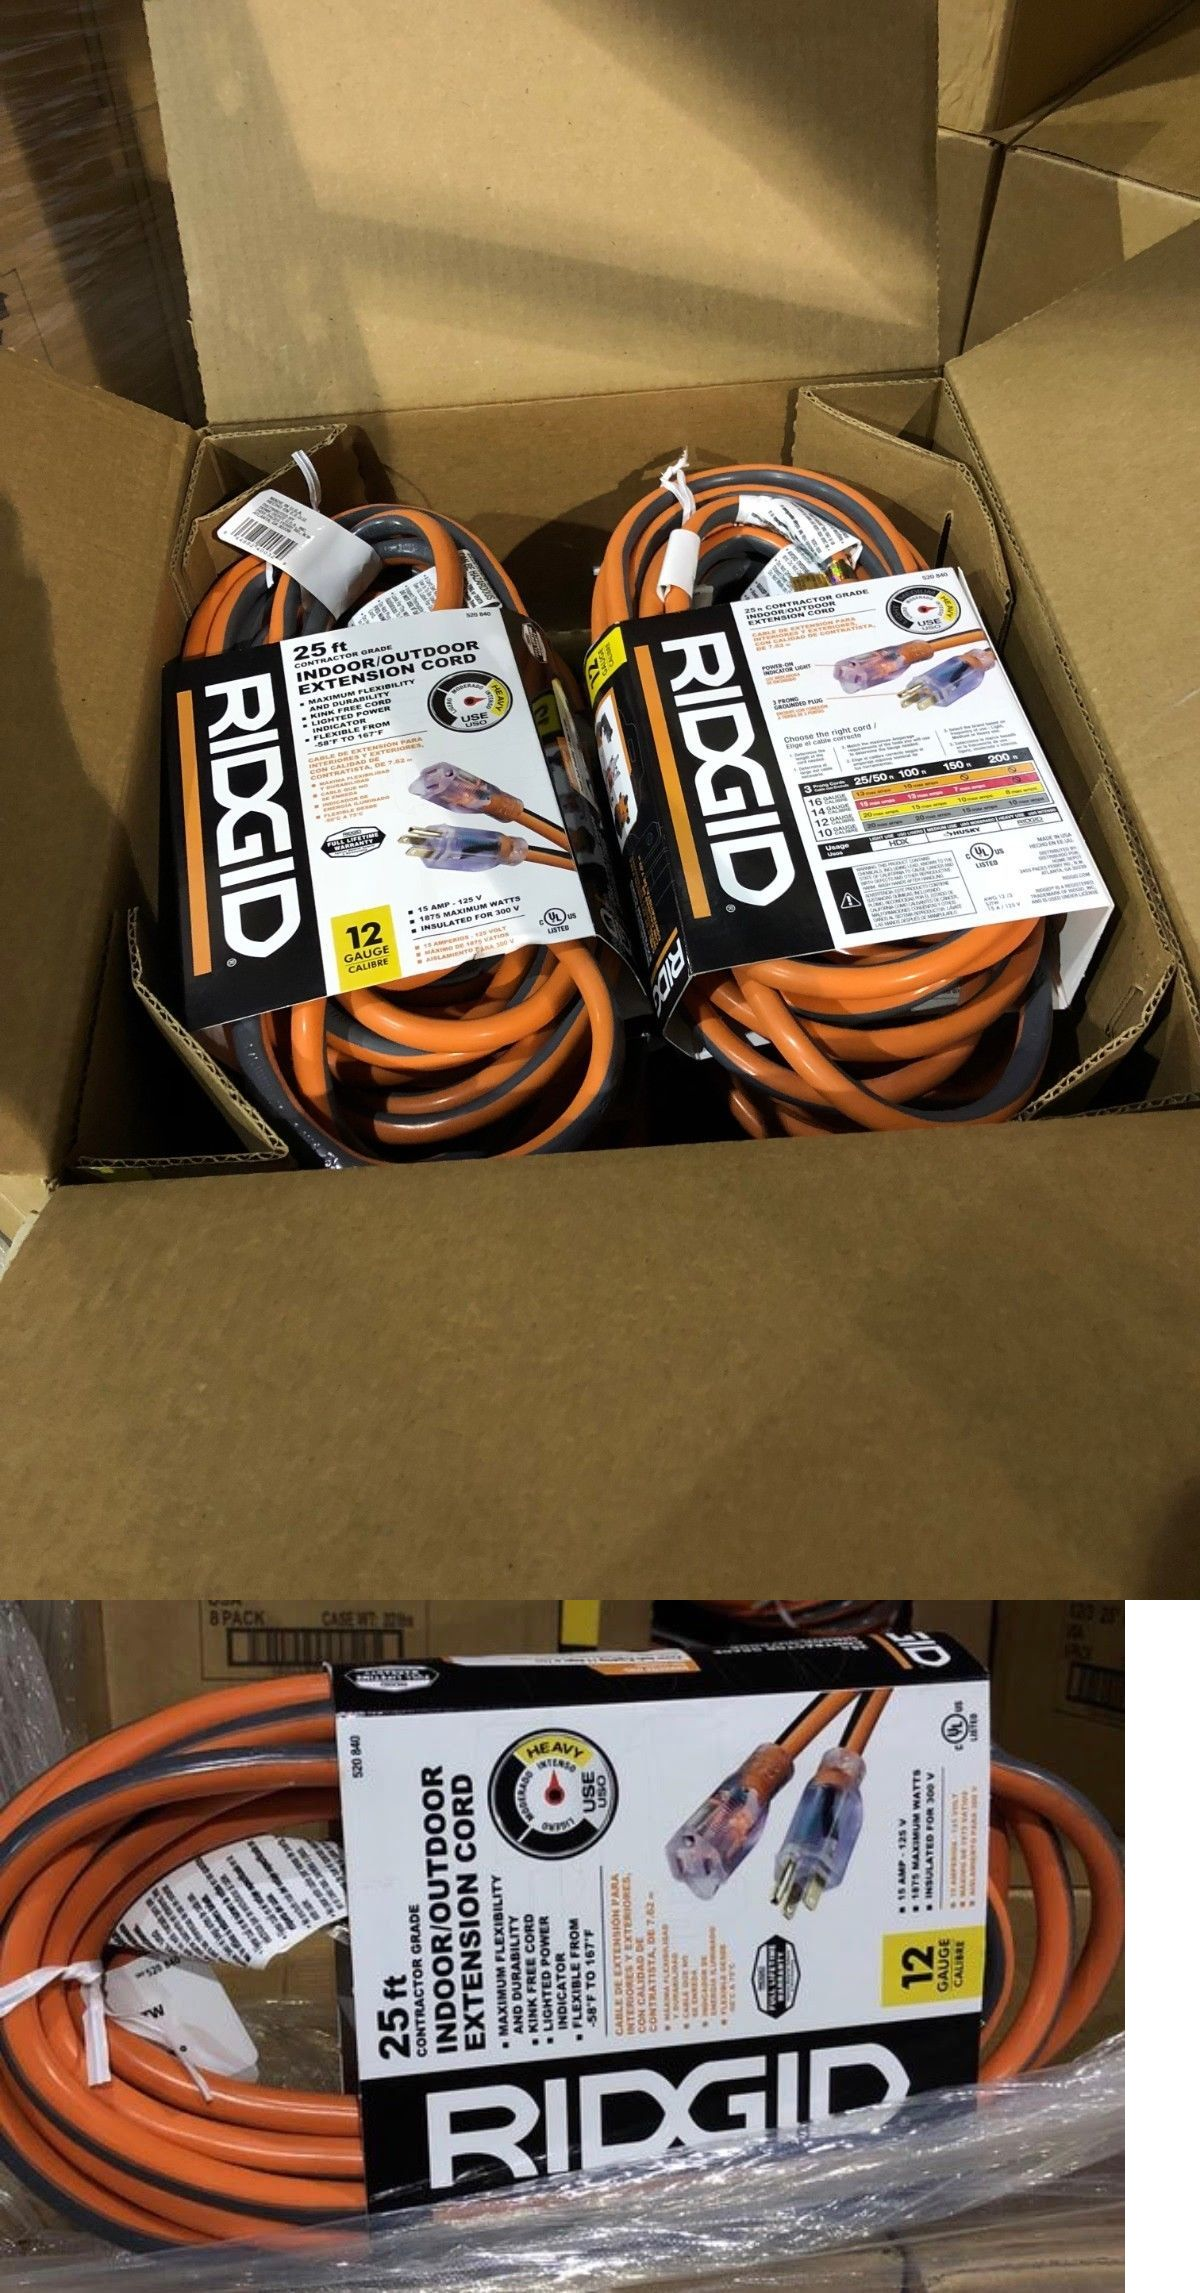 Extension Cords 75577 2 X Extension Cord Ridgid 25 Ft 12 Gauge Outdoor Heavy Duty Buy It Now Only 47 95 On Ebay Extension Extension Cord 12 Gauge Cord